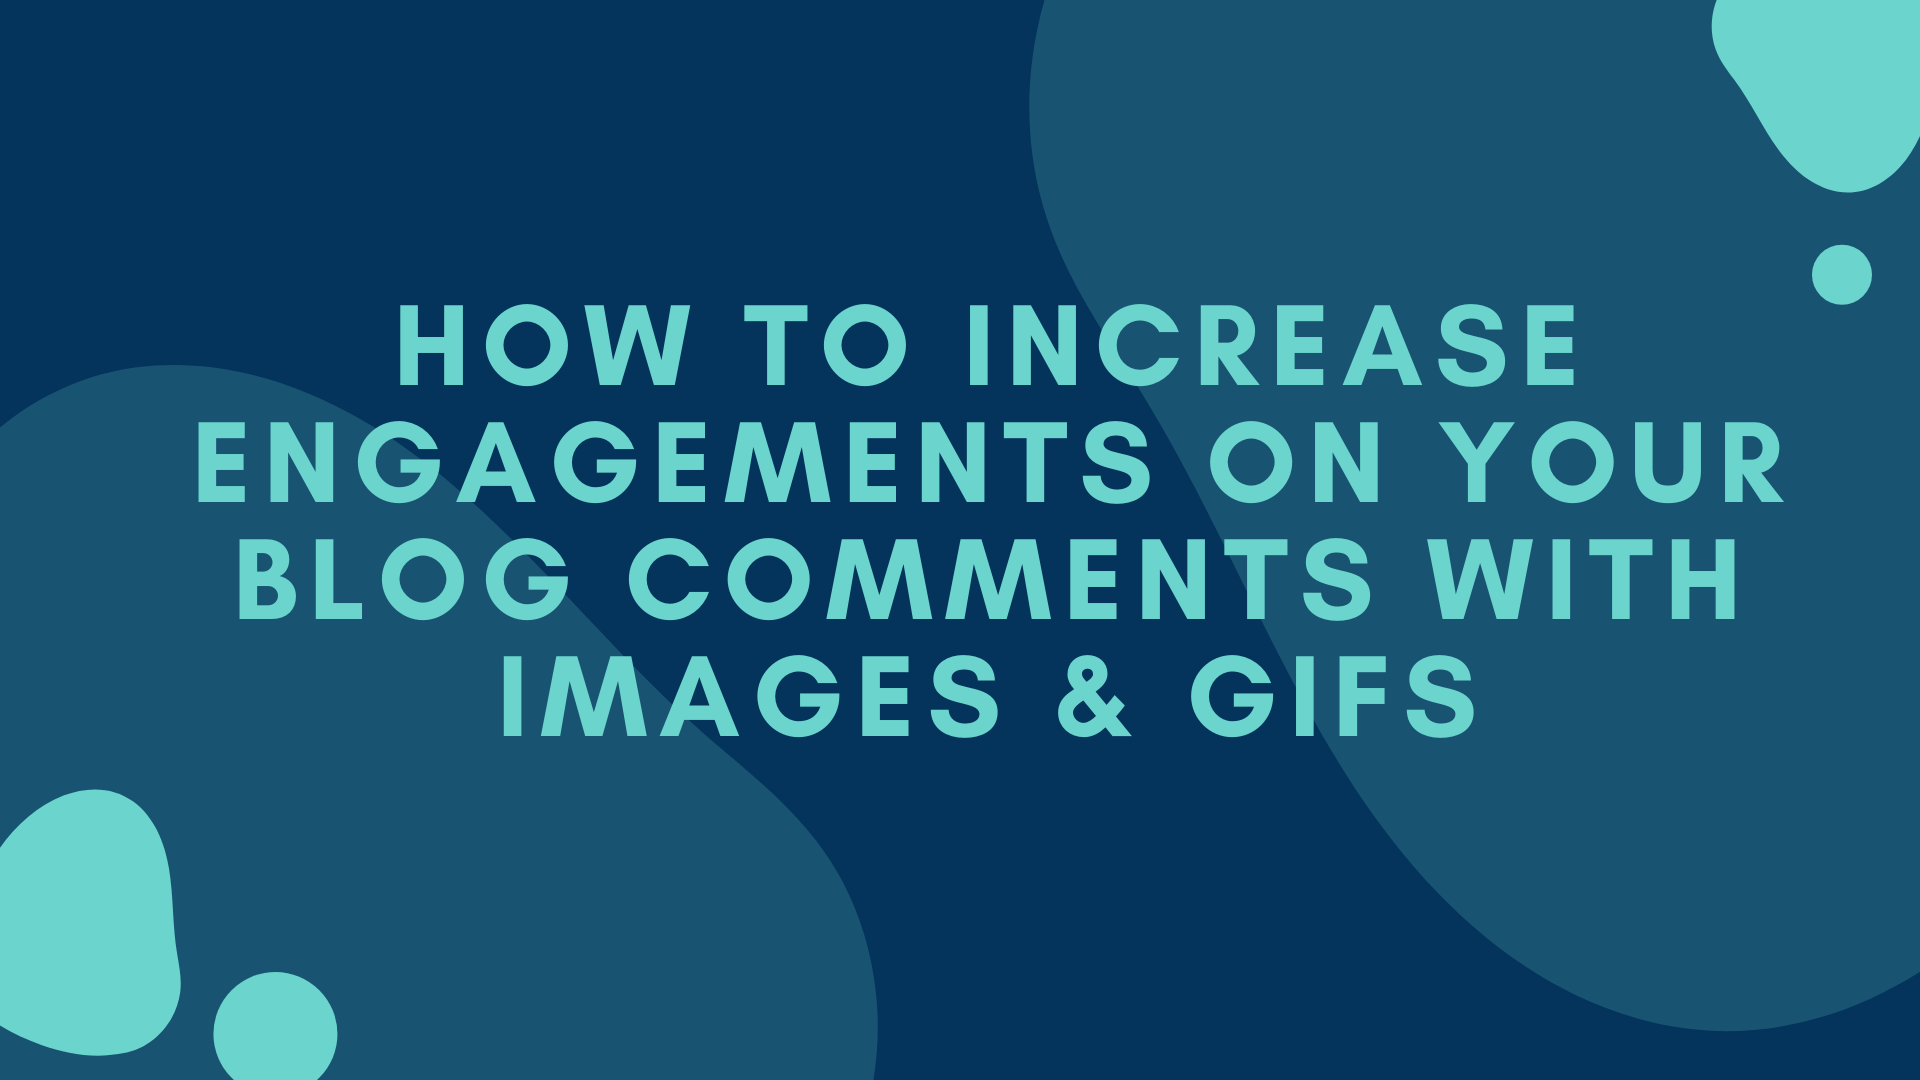 How to increase engagements on your blog comments with images and GIFs